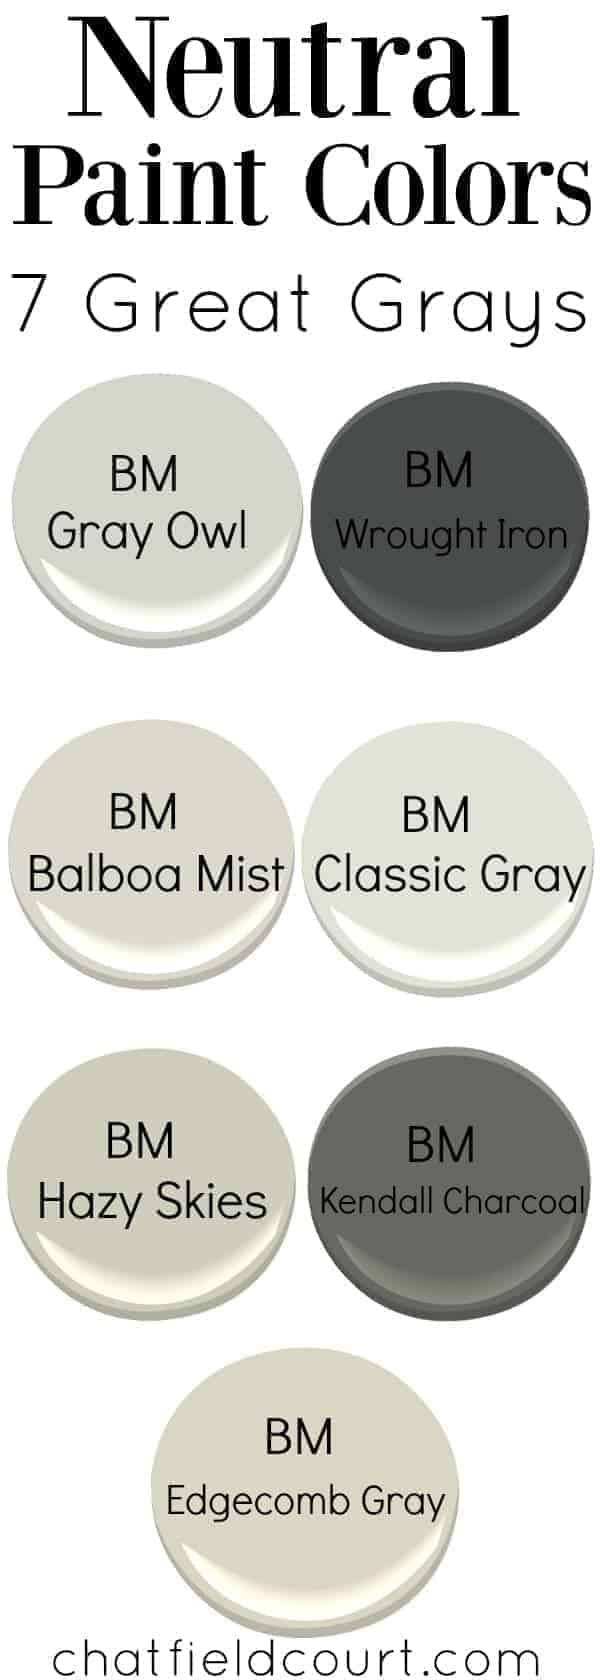 samples of 7 different gray paint colors, and large graphic